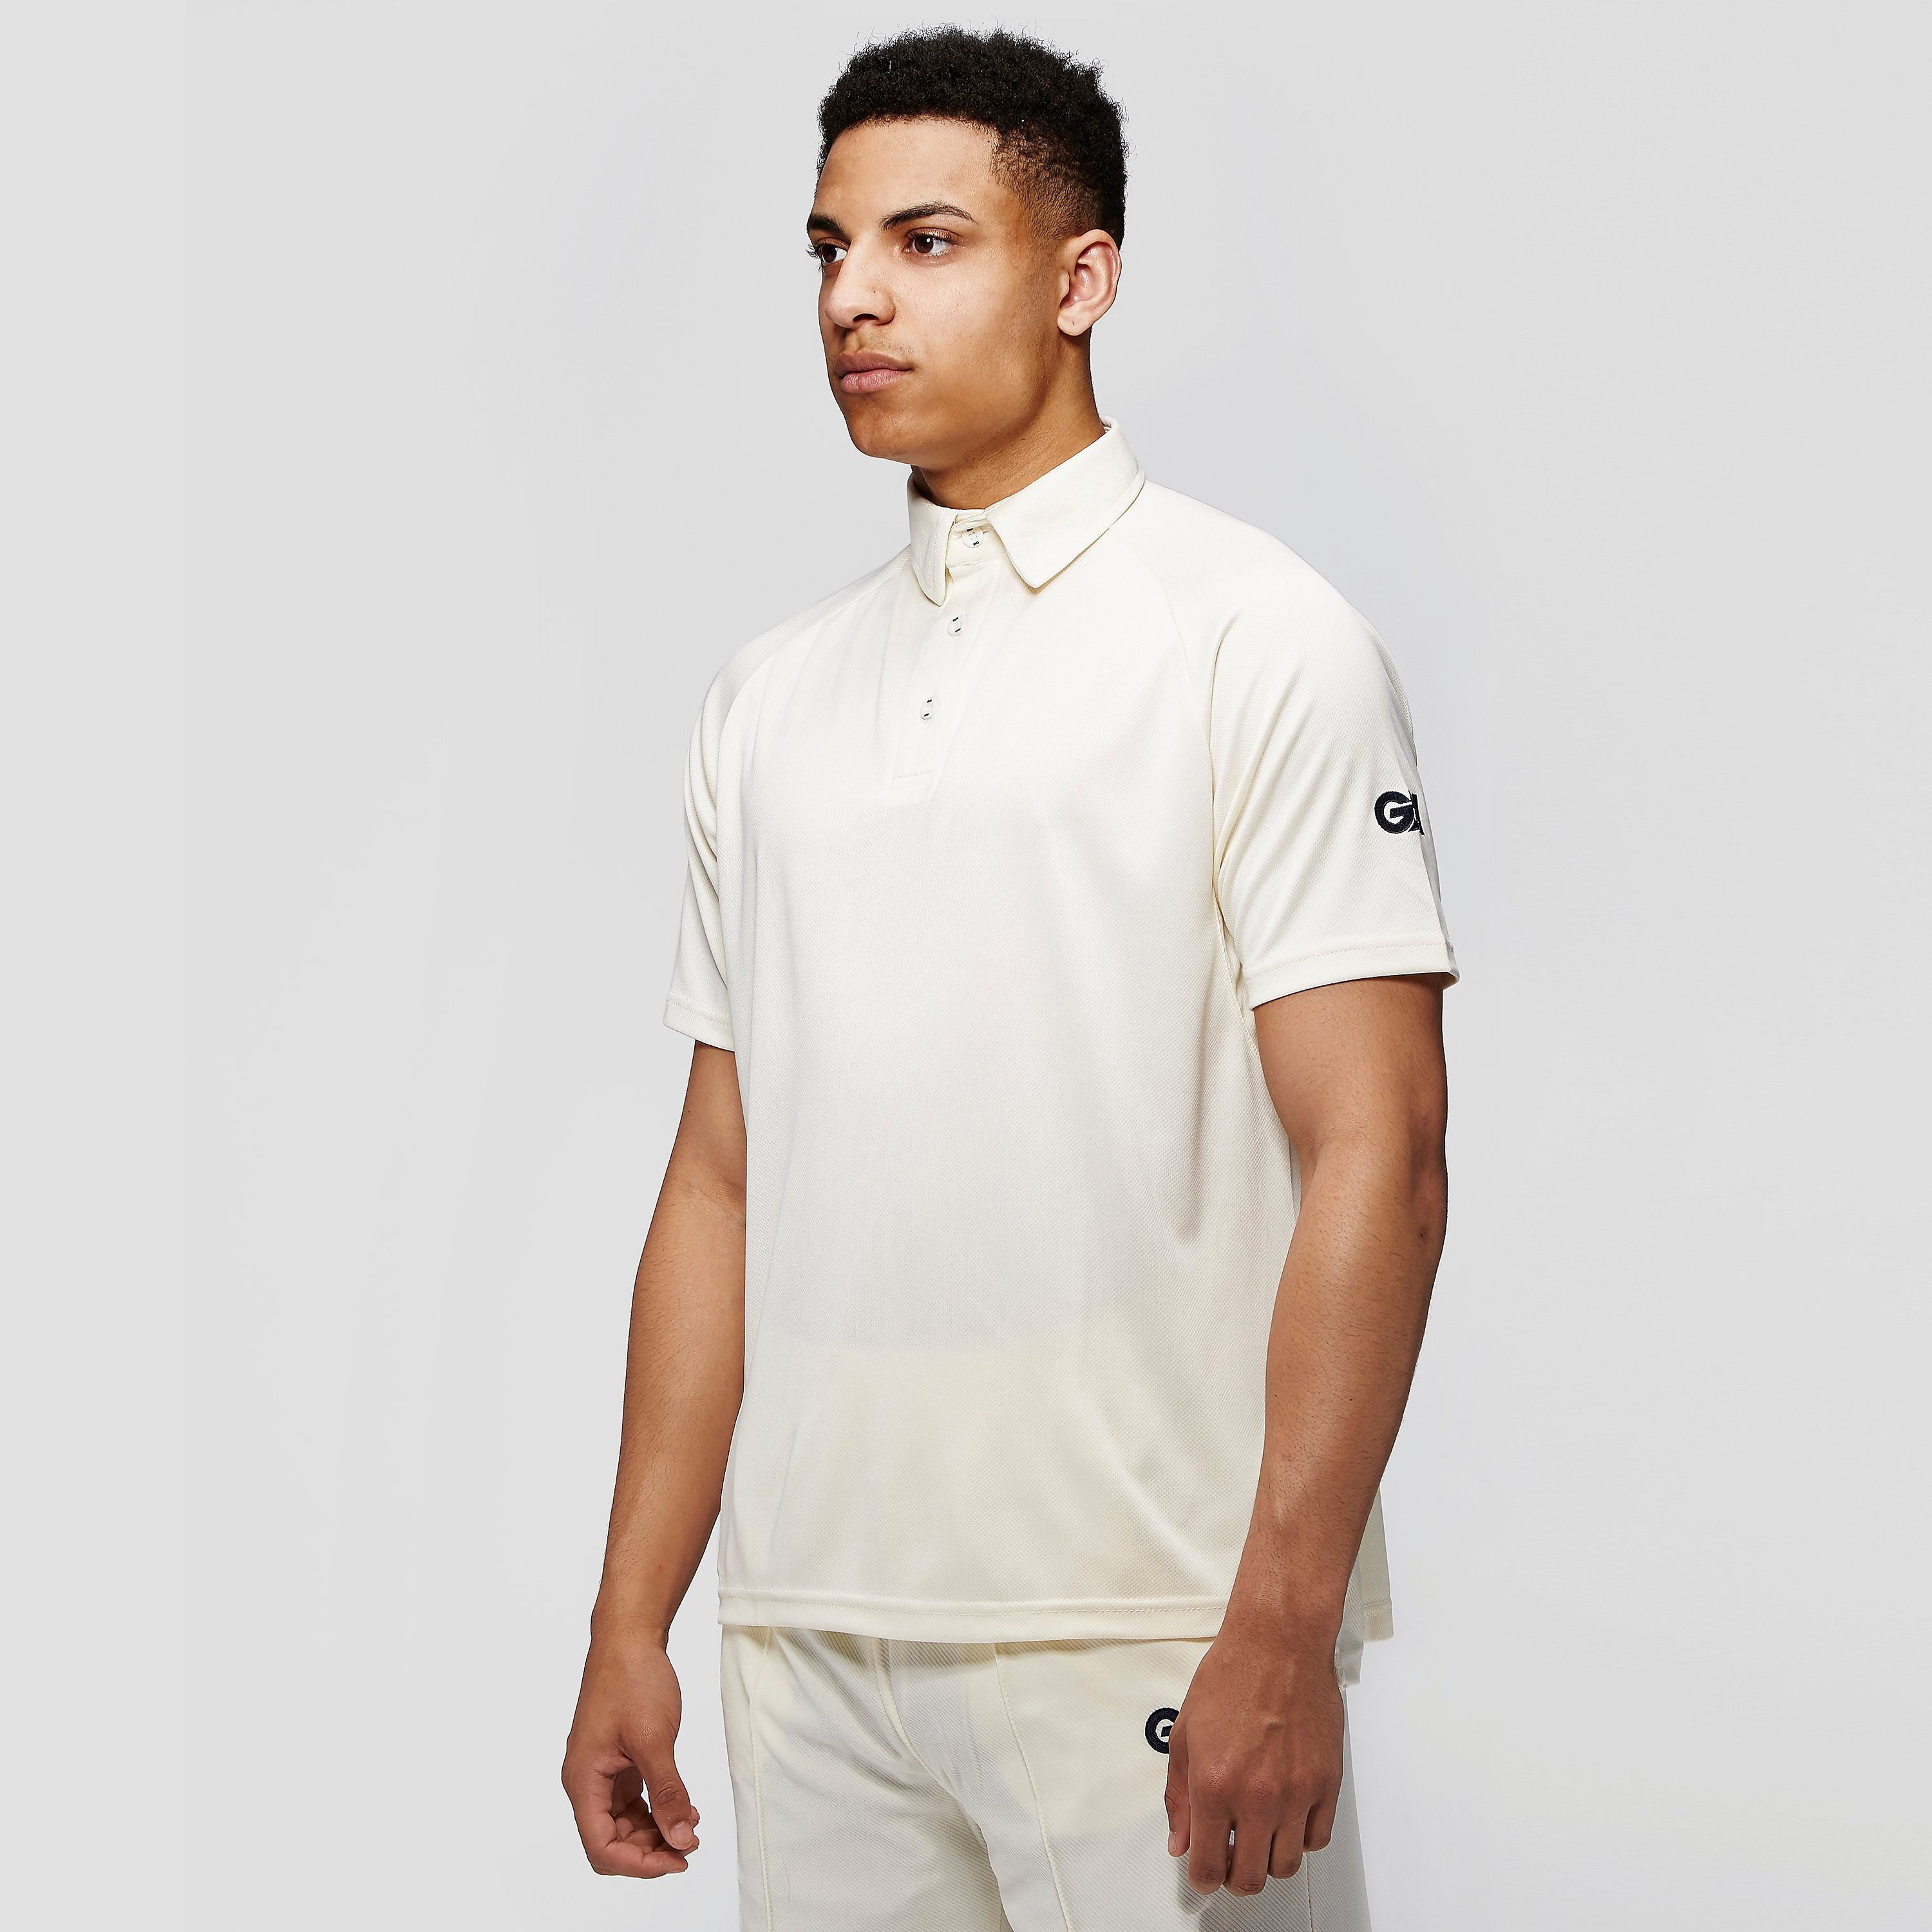 Gunn & Moore Premier Club Men's 3/4 Sleeve Cricket Shirt